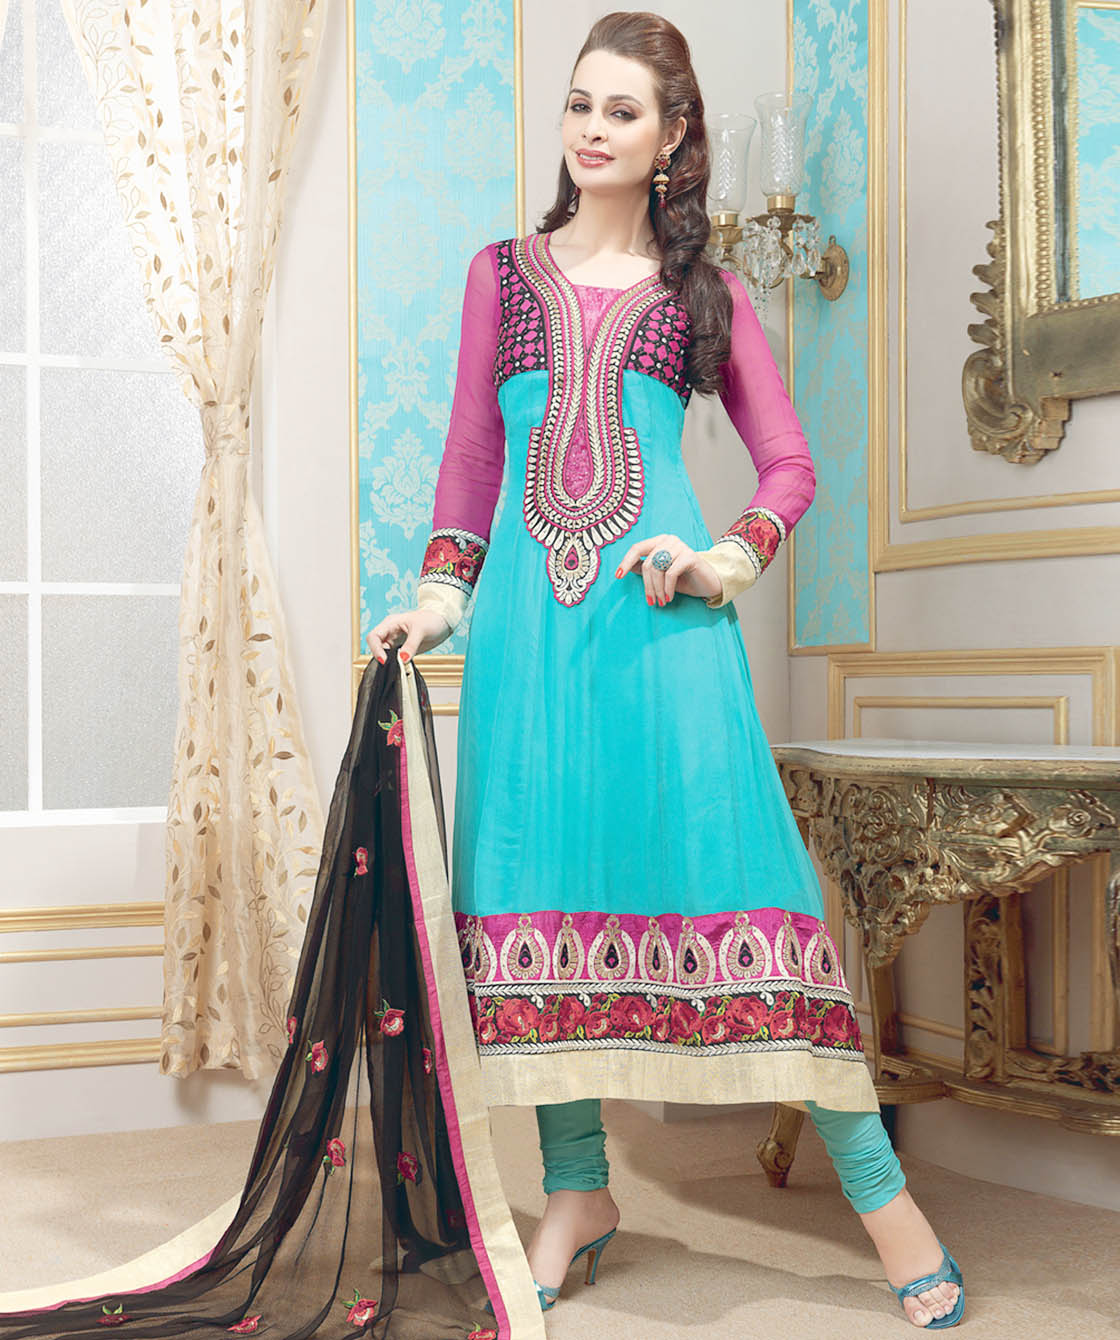 Pakistani fashion dresses designs 2013 Fashion Designs Dresses 2013